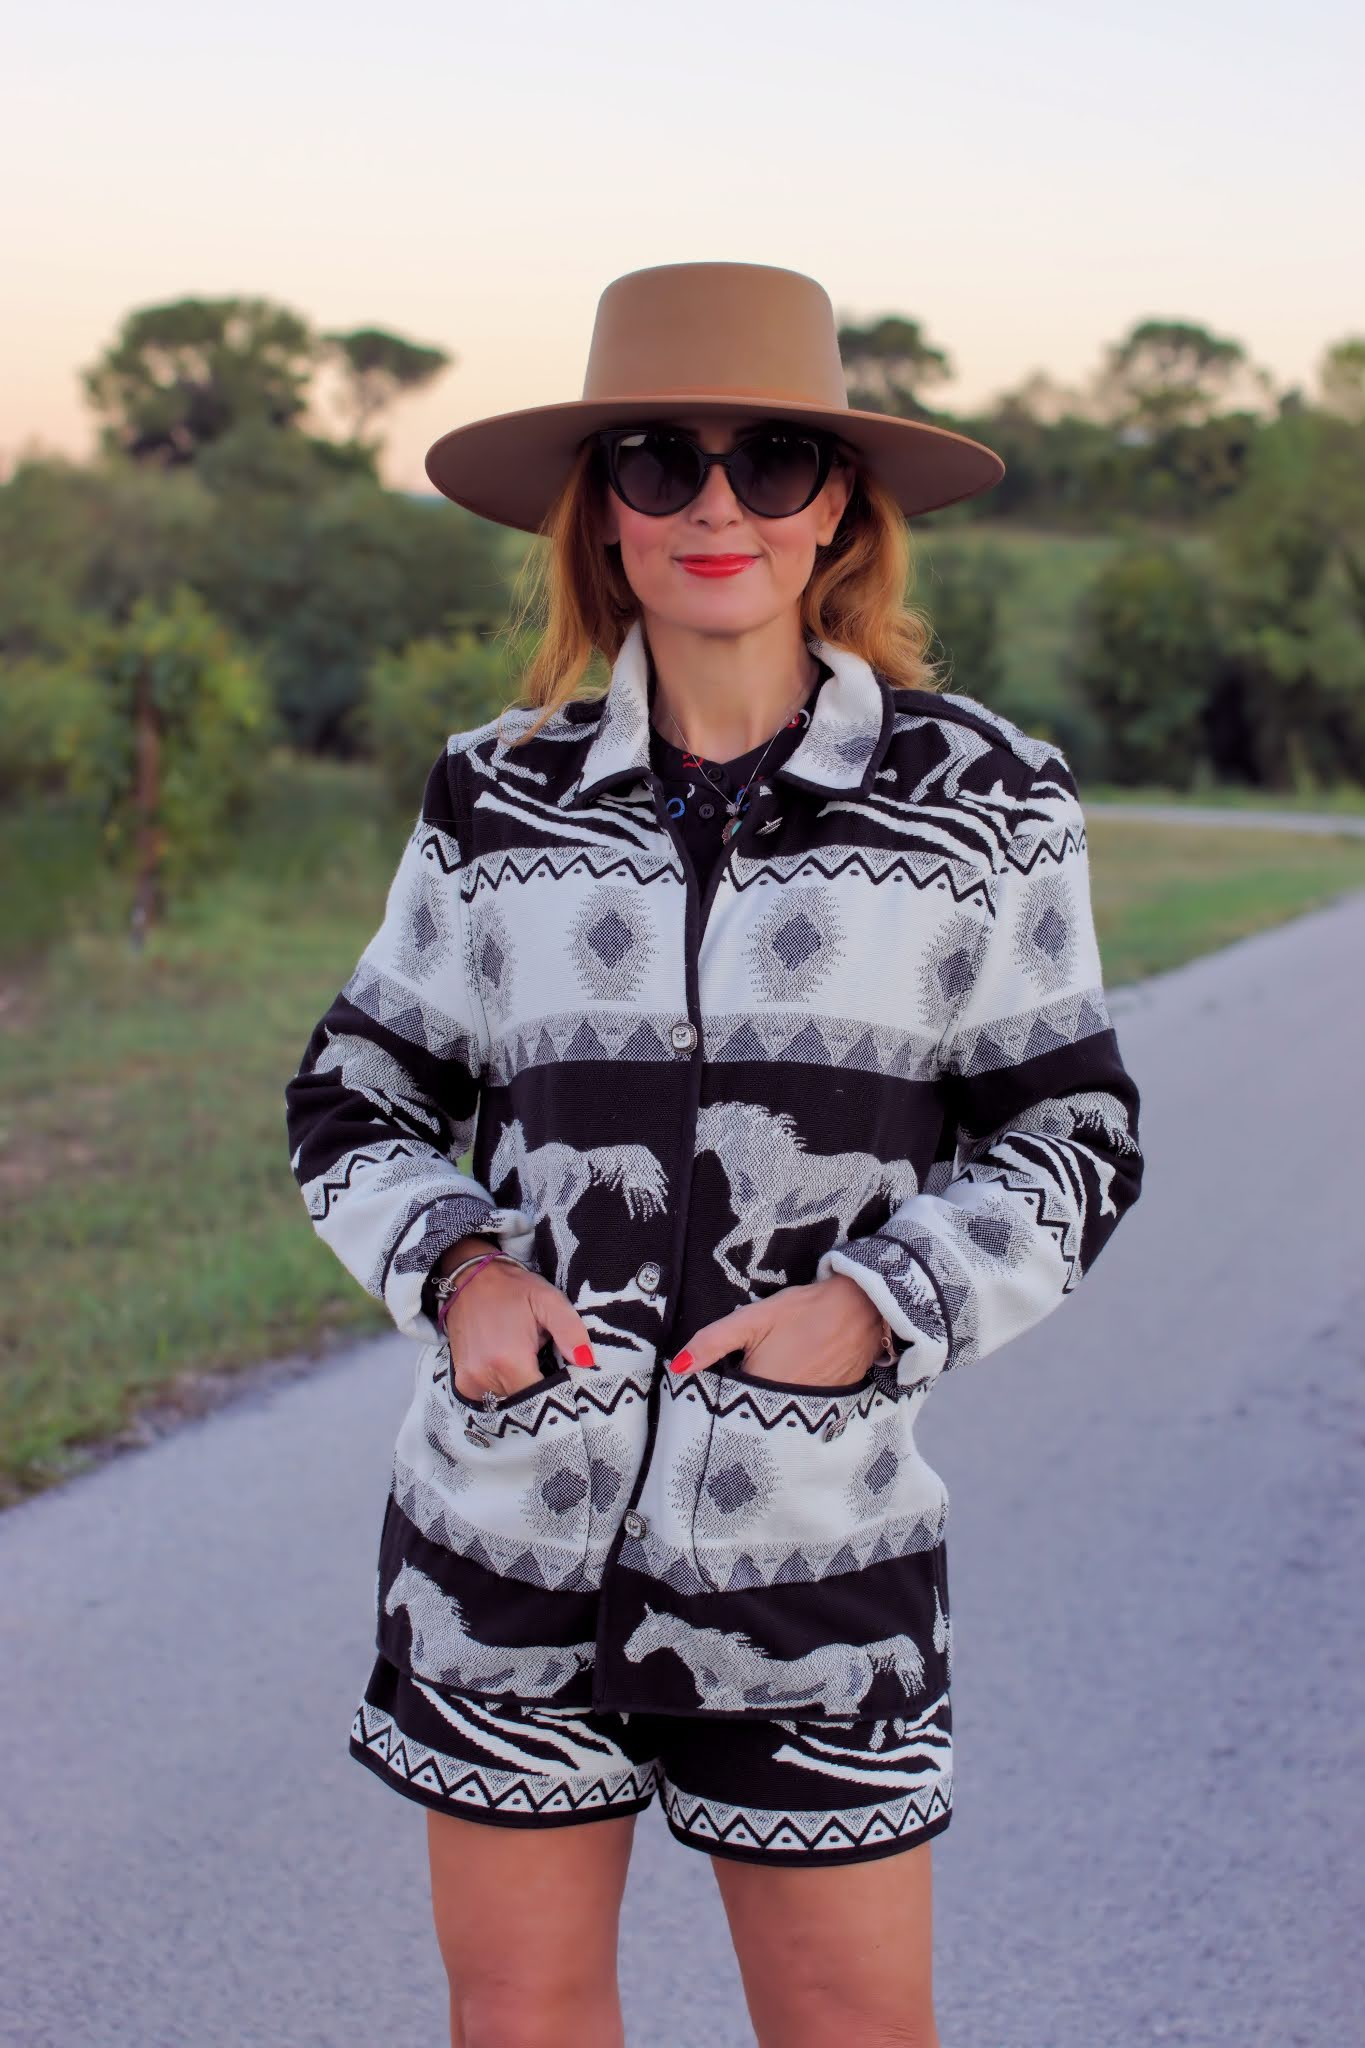 Western jacquard black and white suit